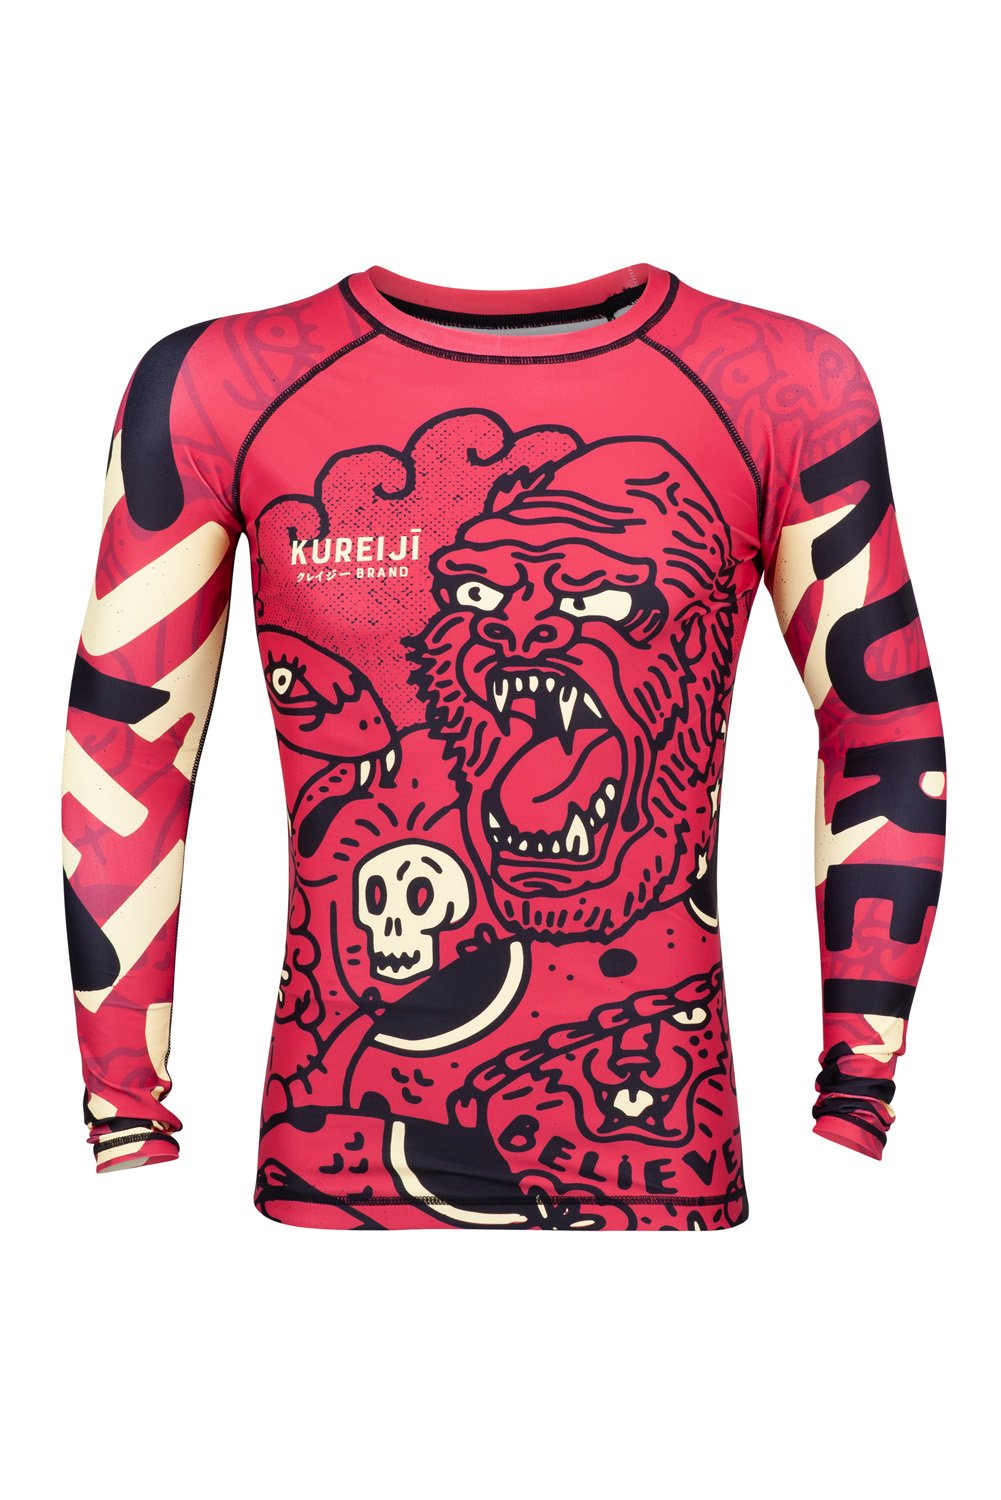 Kureiji Battle Rashguard Long Sleeve